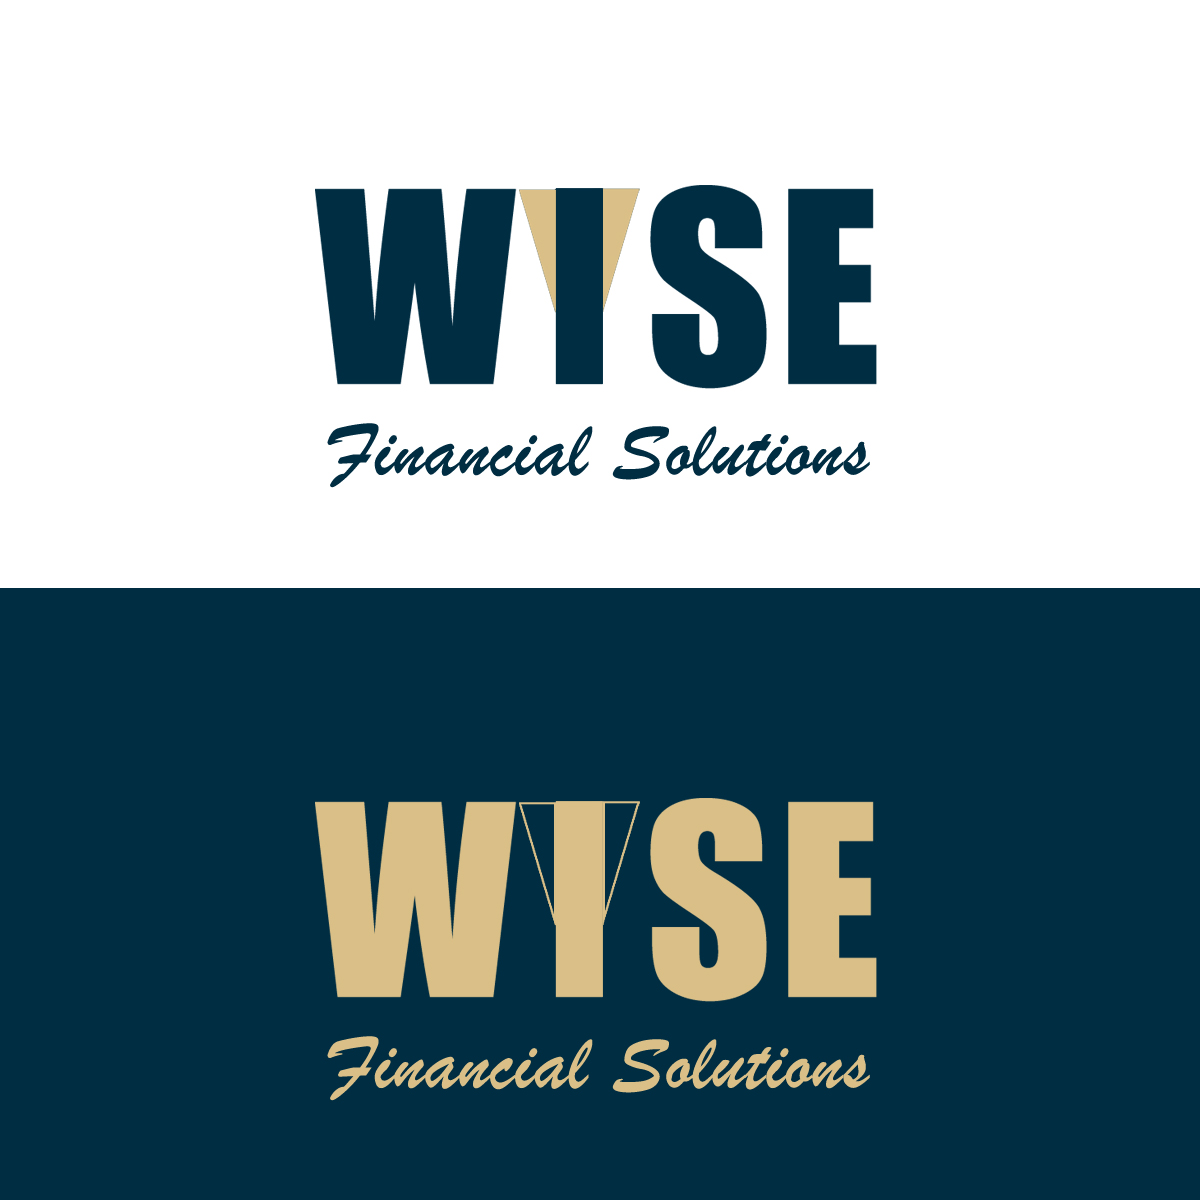 Logo Design by Private User - Entry No. 145 in the Logo Design Contest Fun Logo Design for Wyse Financial Solutions.